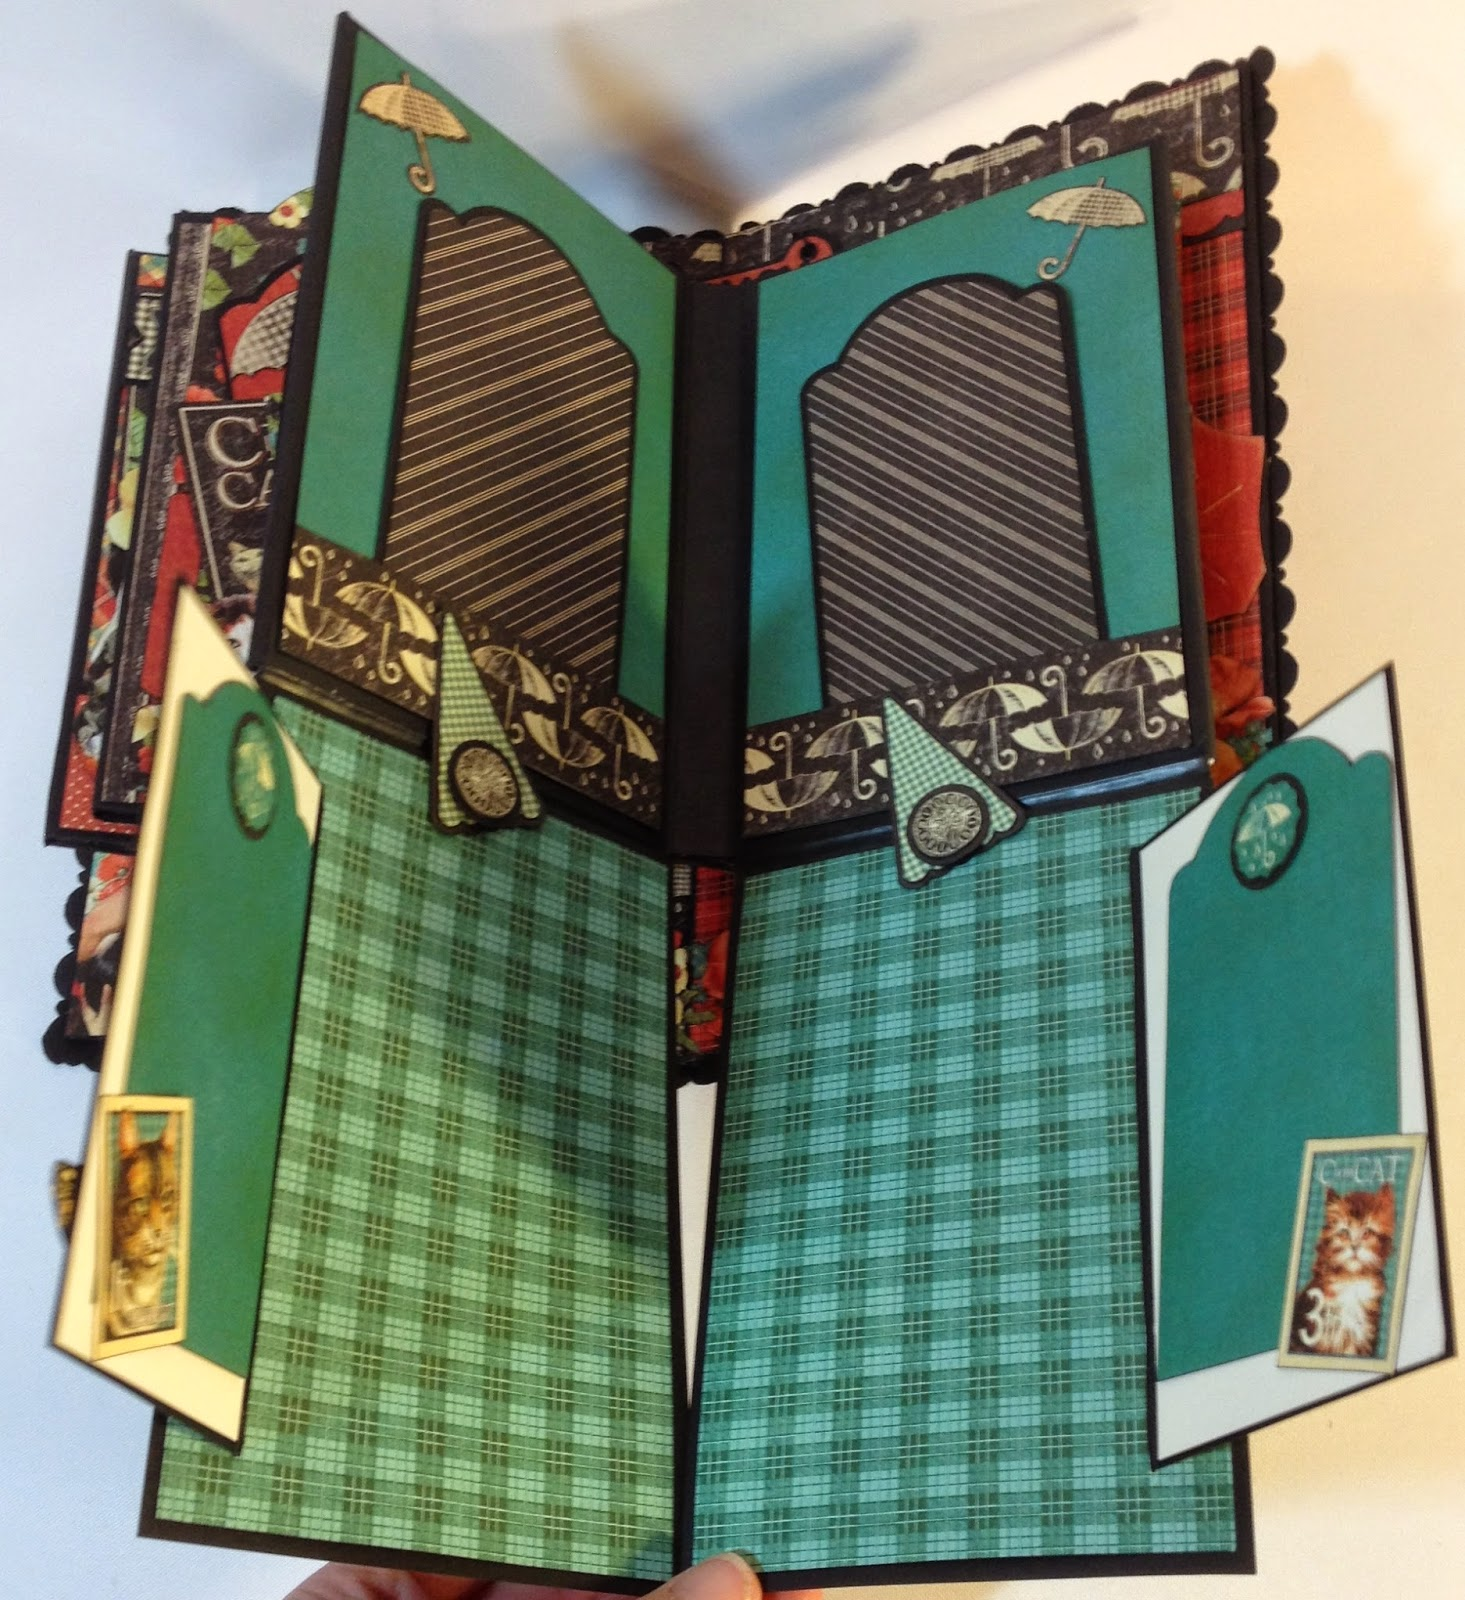 How to make scrapbook video -  Are Fastened With Hinges On The Backside Of The Papers Fastened With A Banner That Spins Will Show How To Make The Slit For The Hinges In The Video